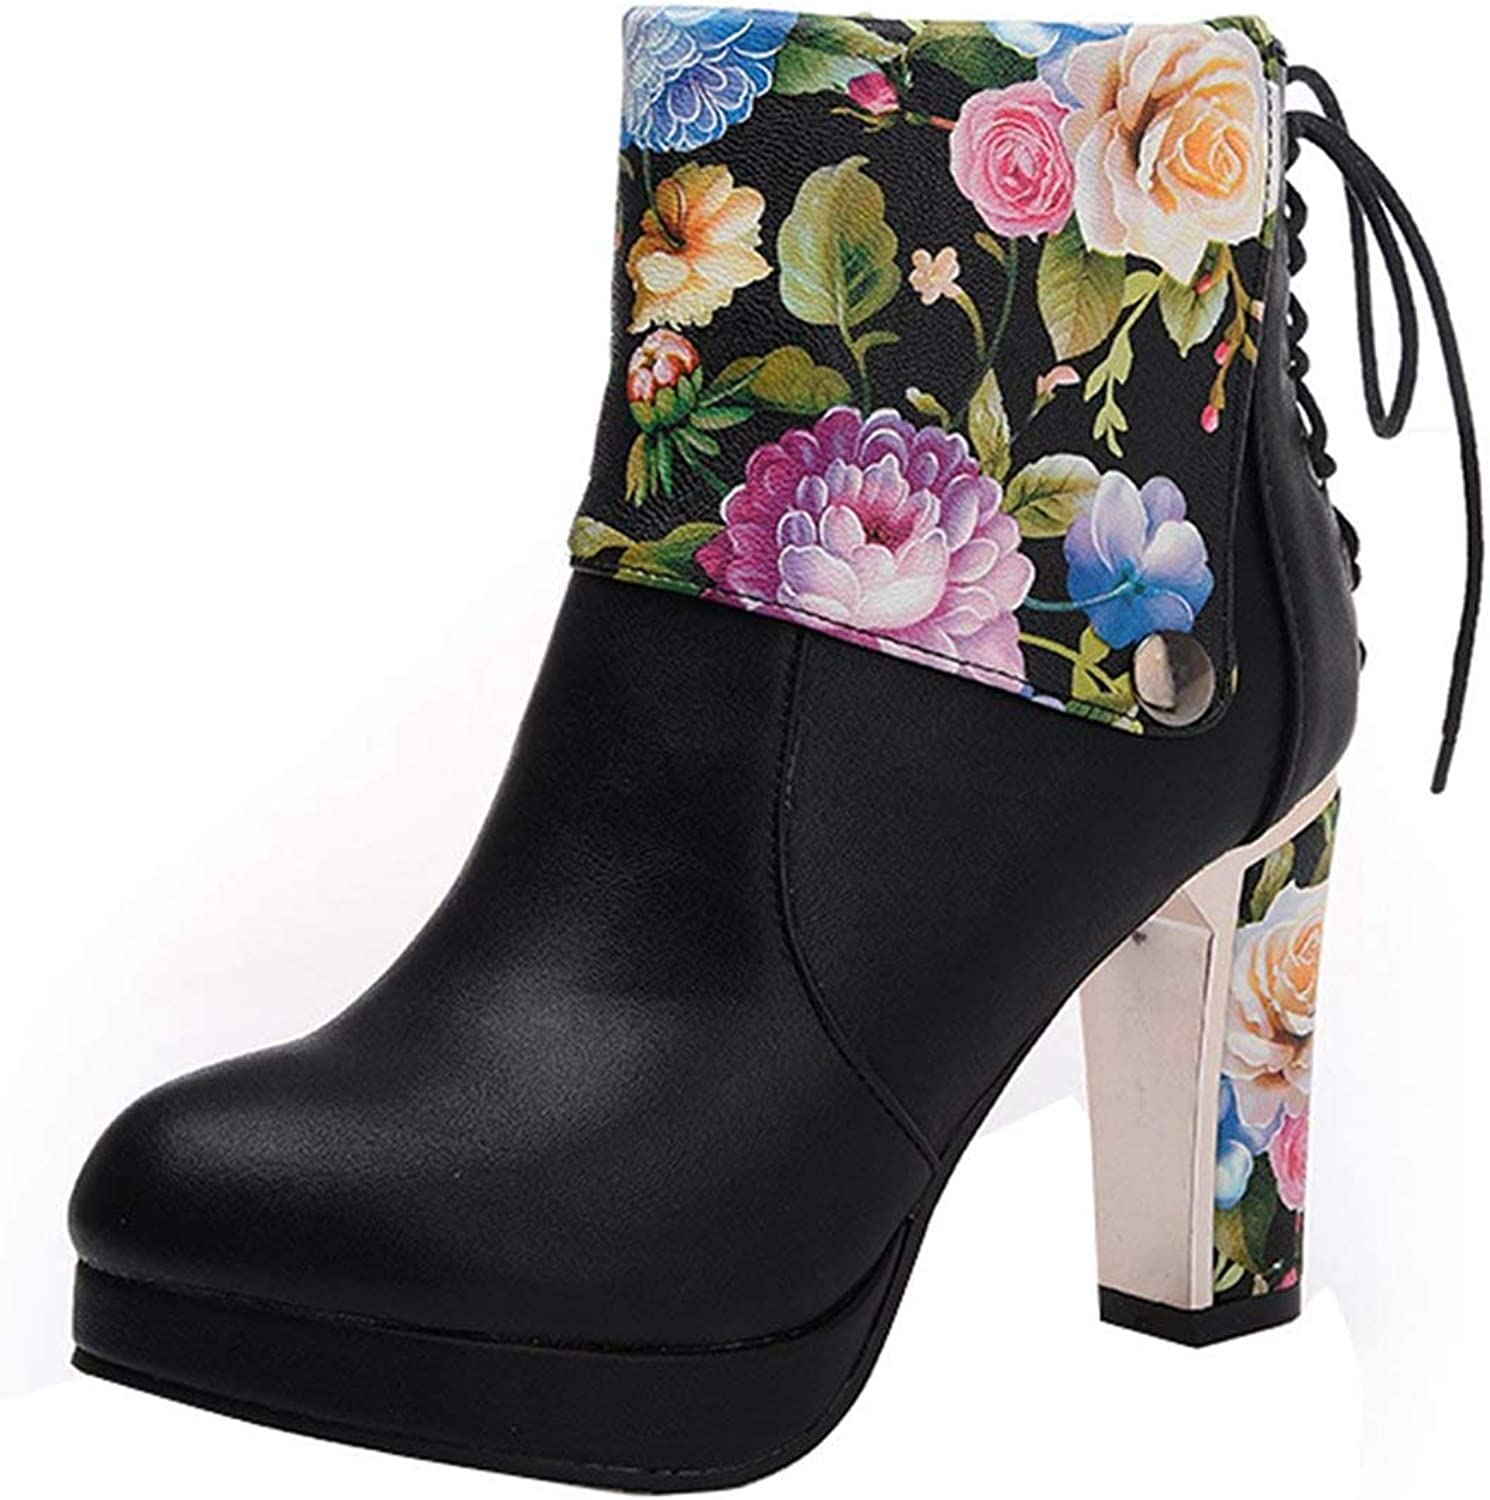 Vitalo Women Chunky Platform High Heel Ankle Boots Zip Lace Up Flower Print Booties